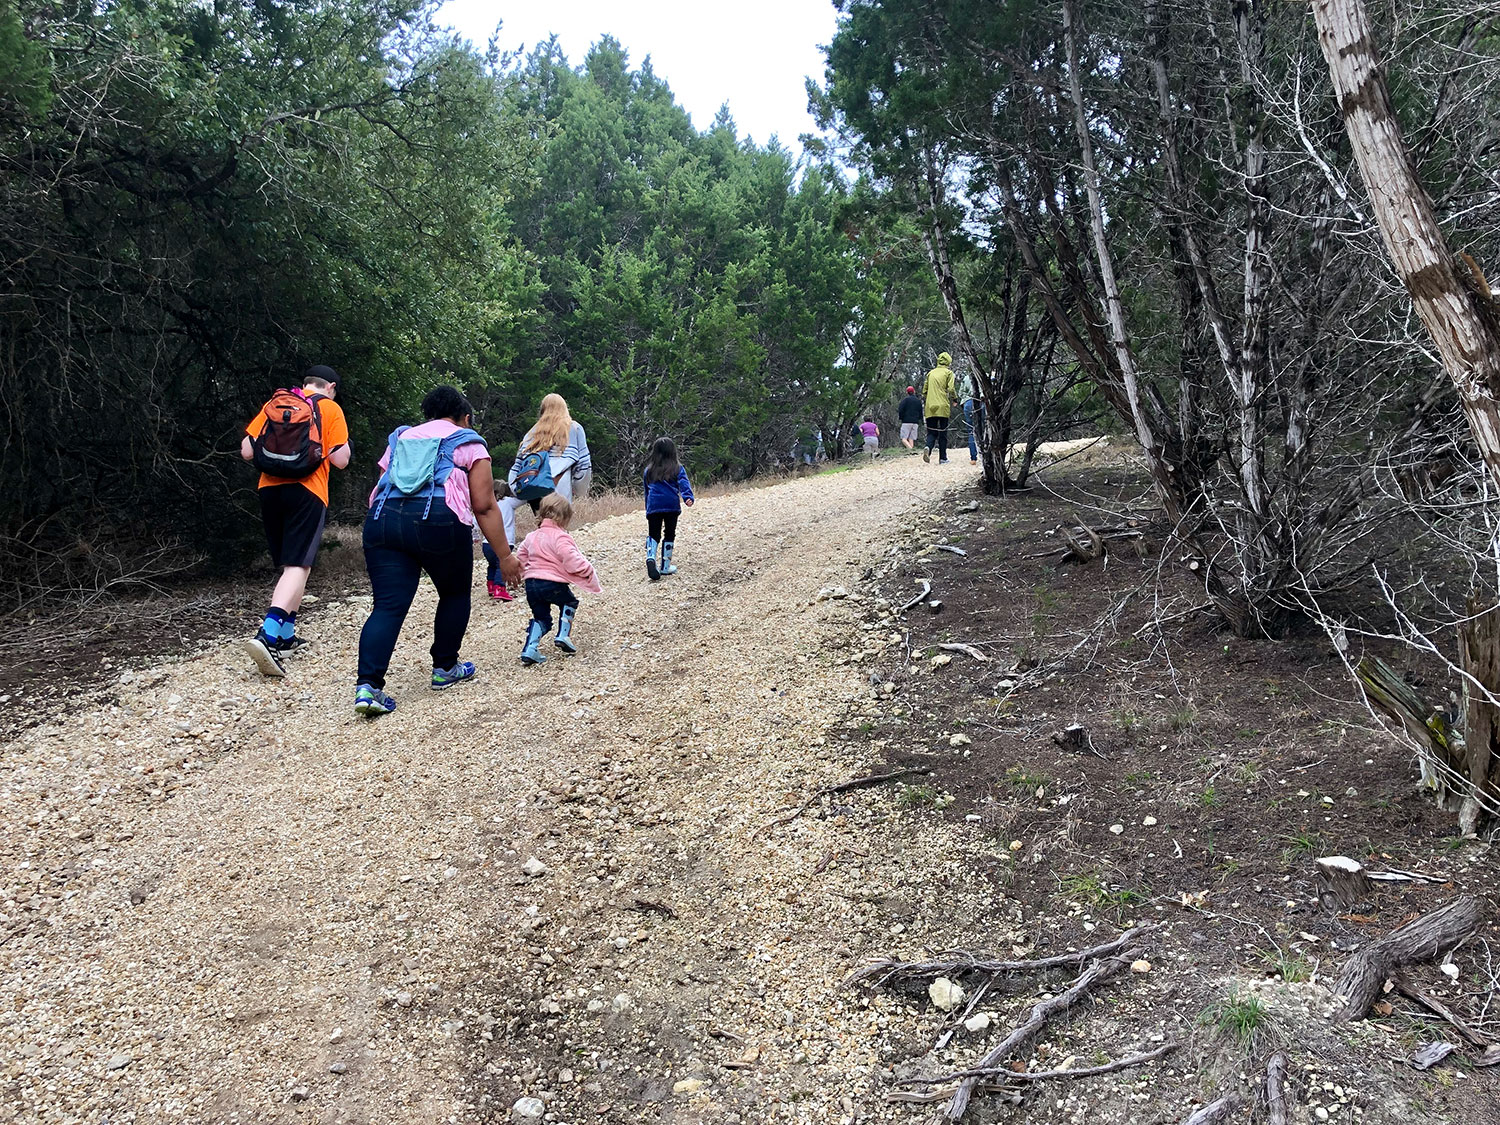 Group of people hiking at Garey Park